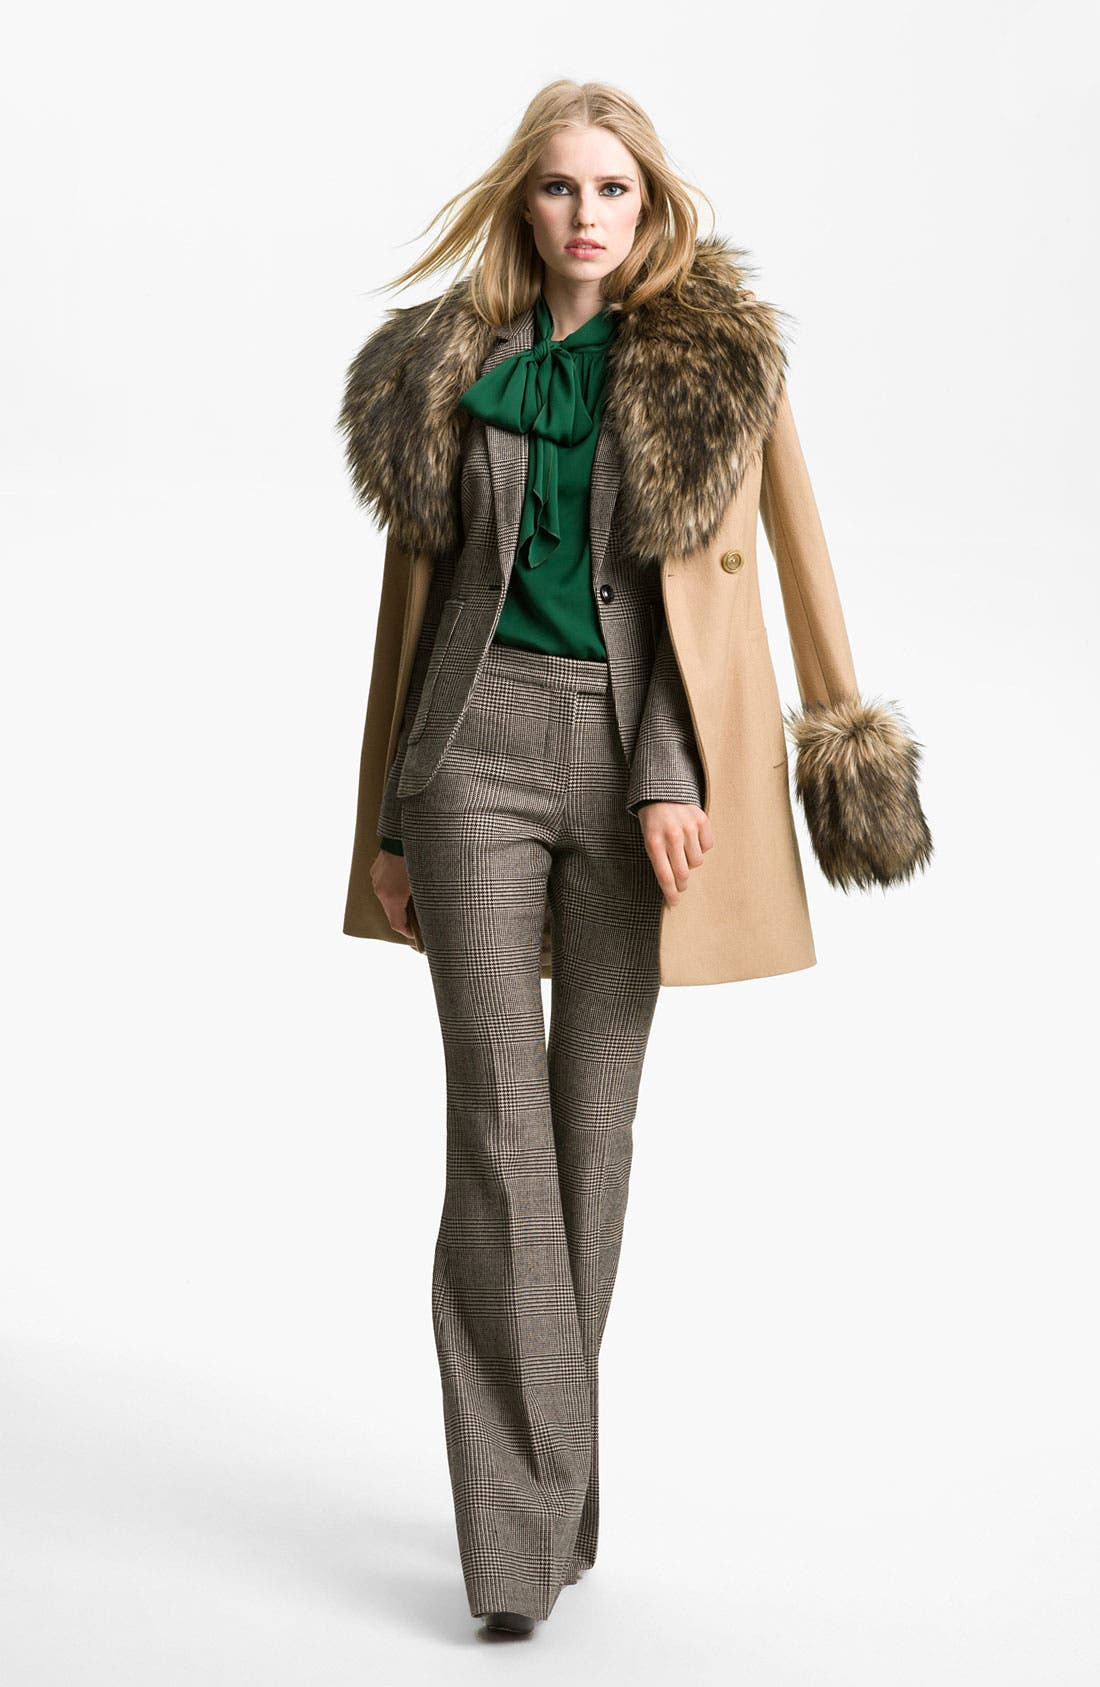 Alternate Image 1 Selected - Rachel Zoe 'Trish' Faux Fur Trim Peacoat